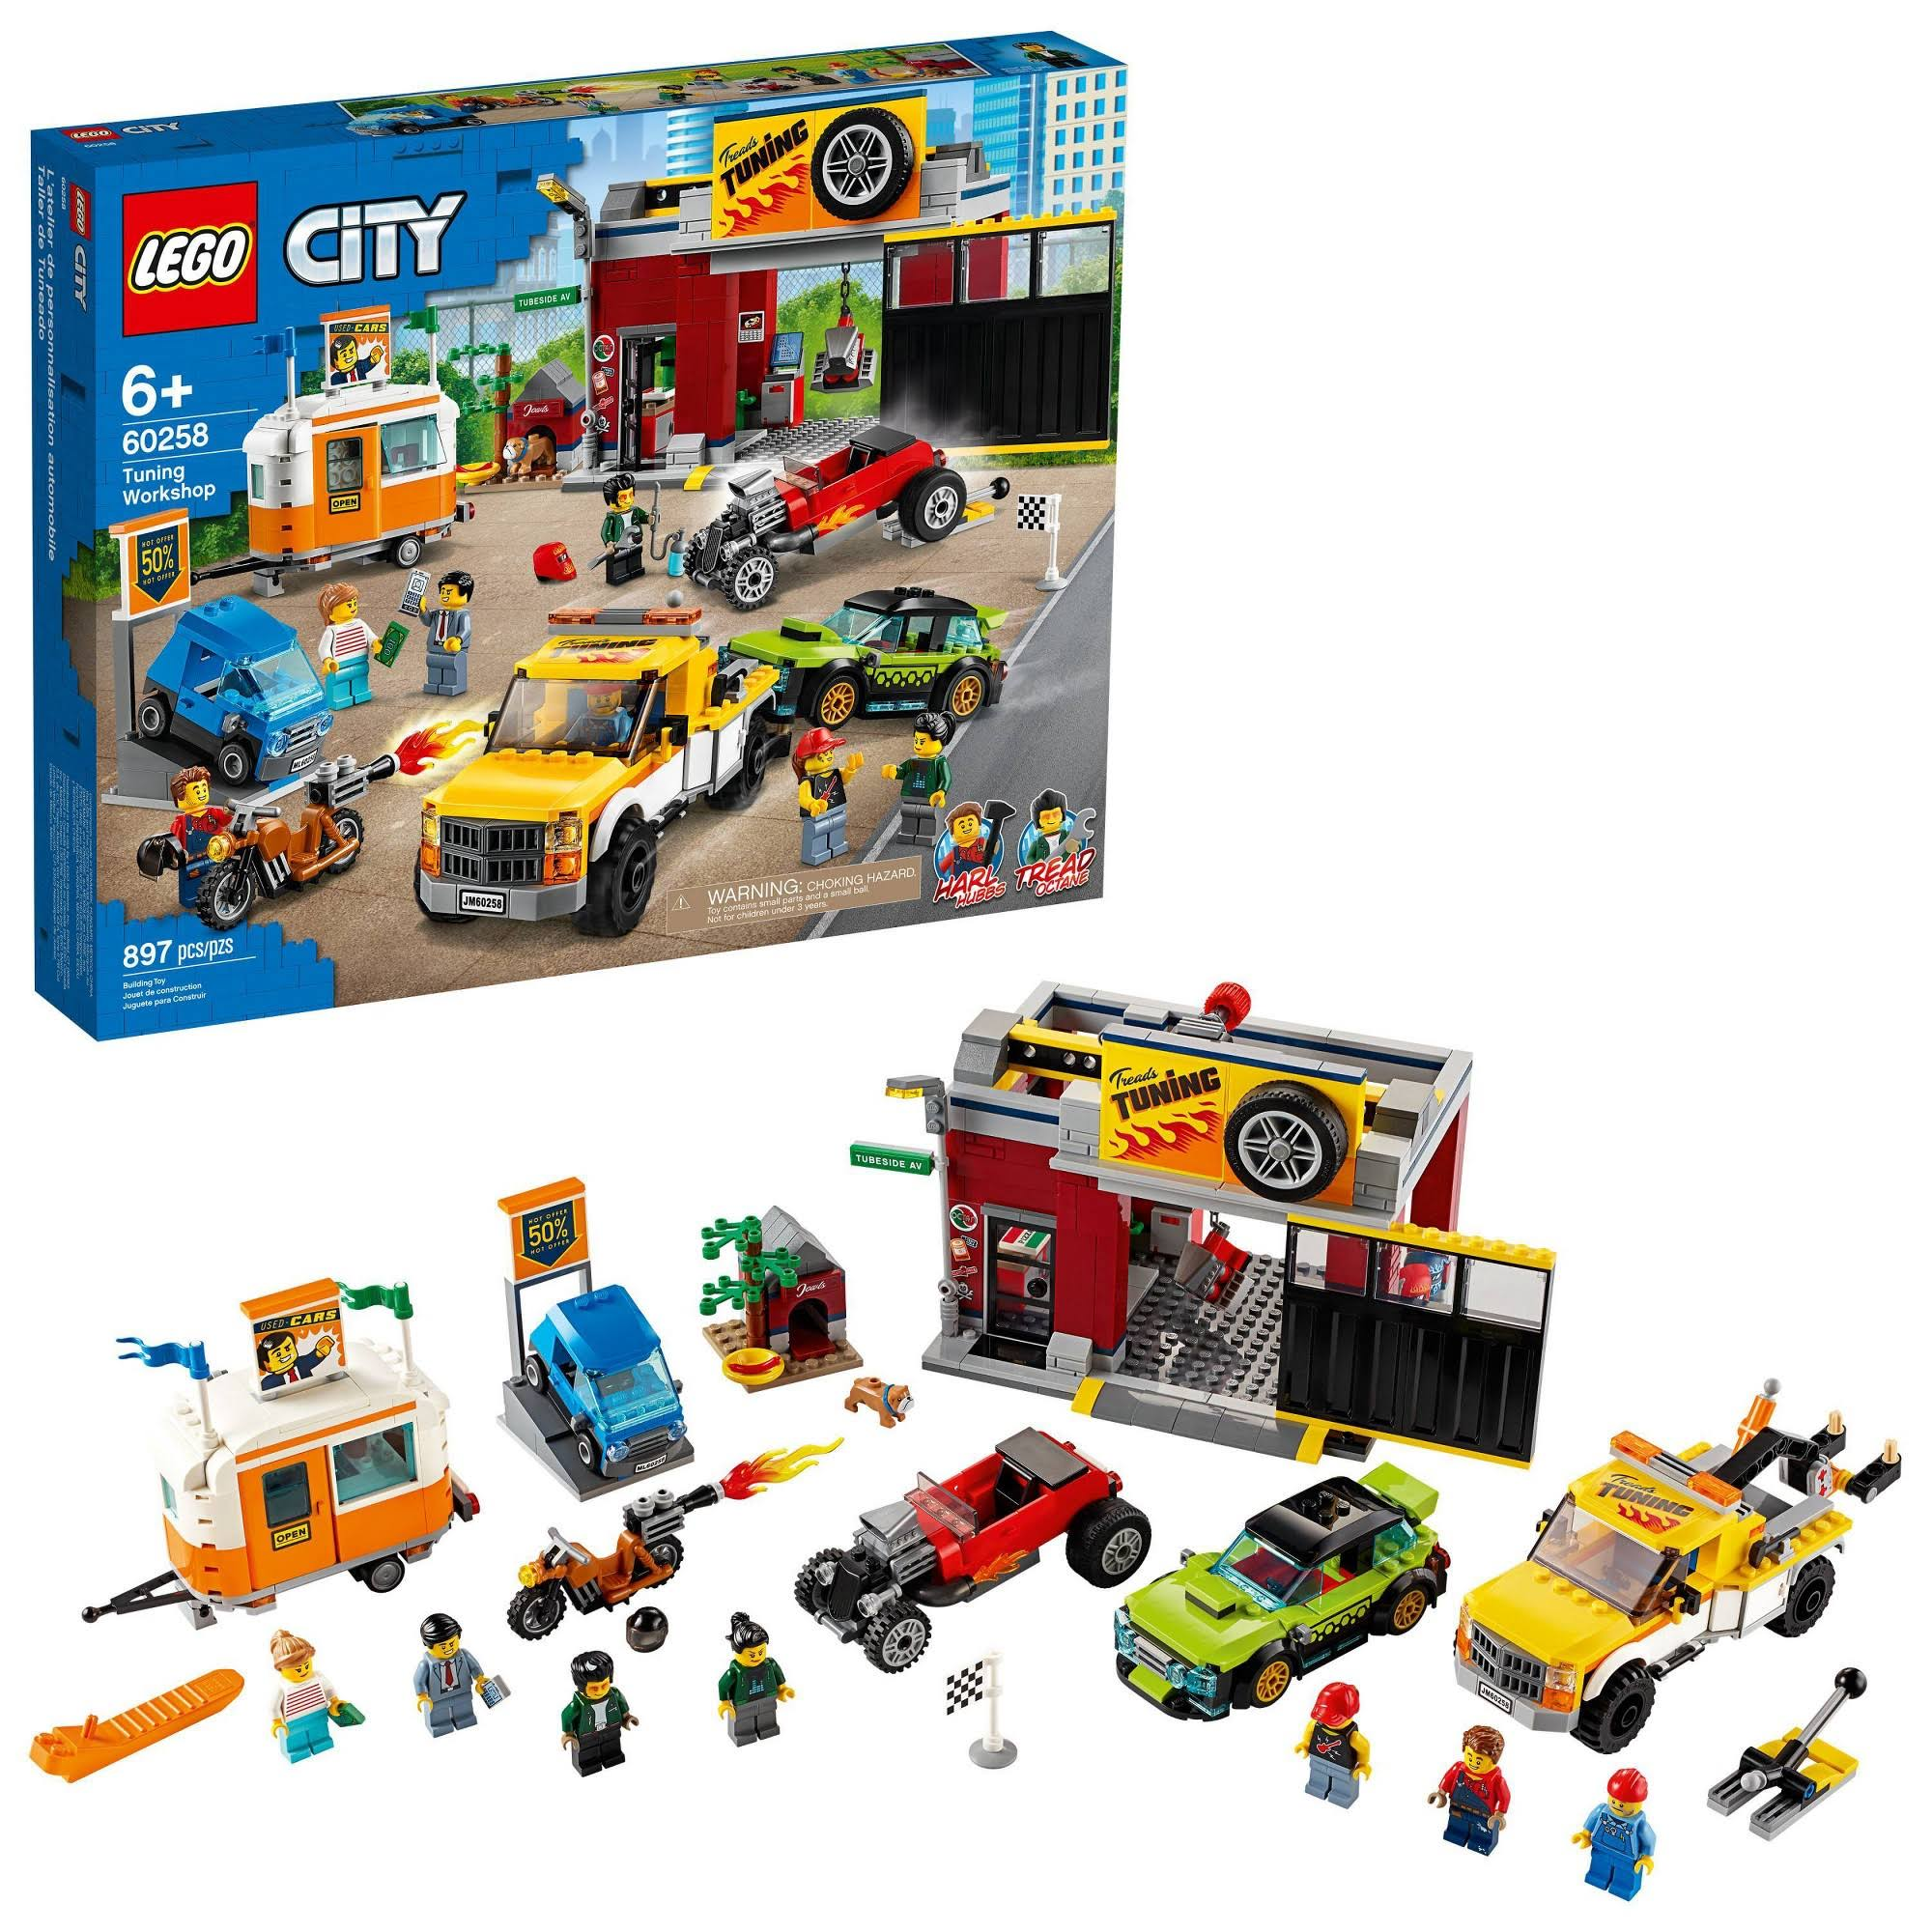 Lego City Tuning Workshop 60258 Building Kit